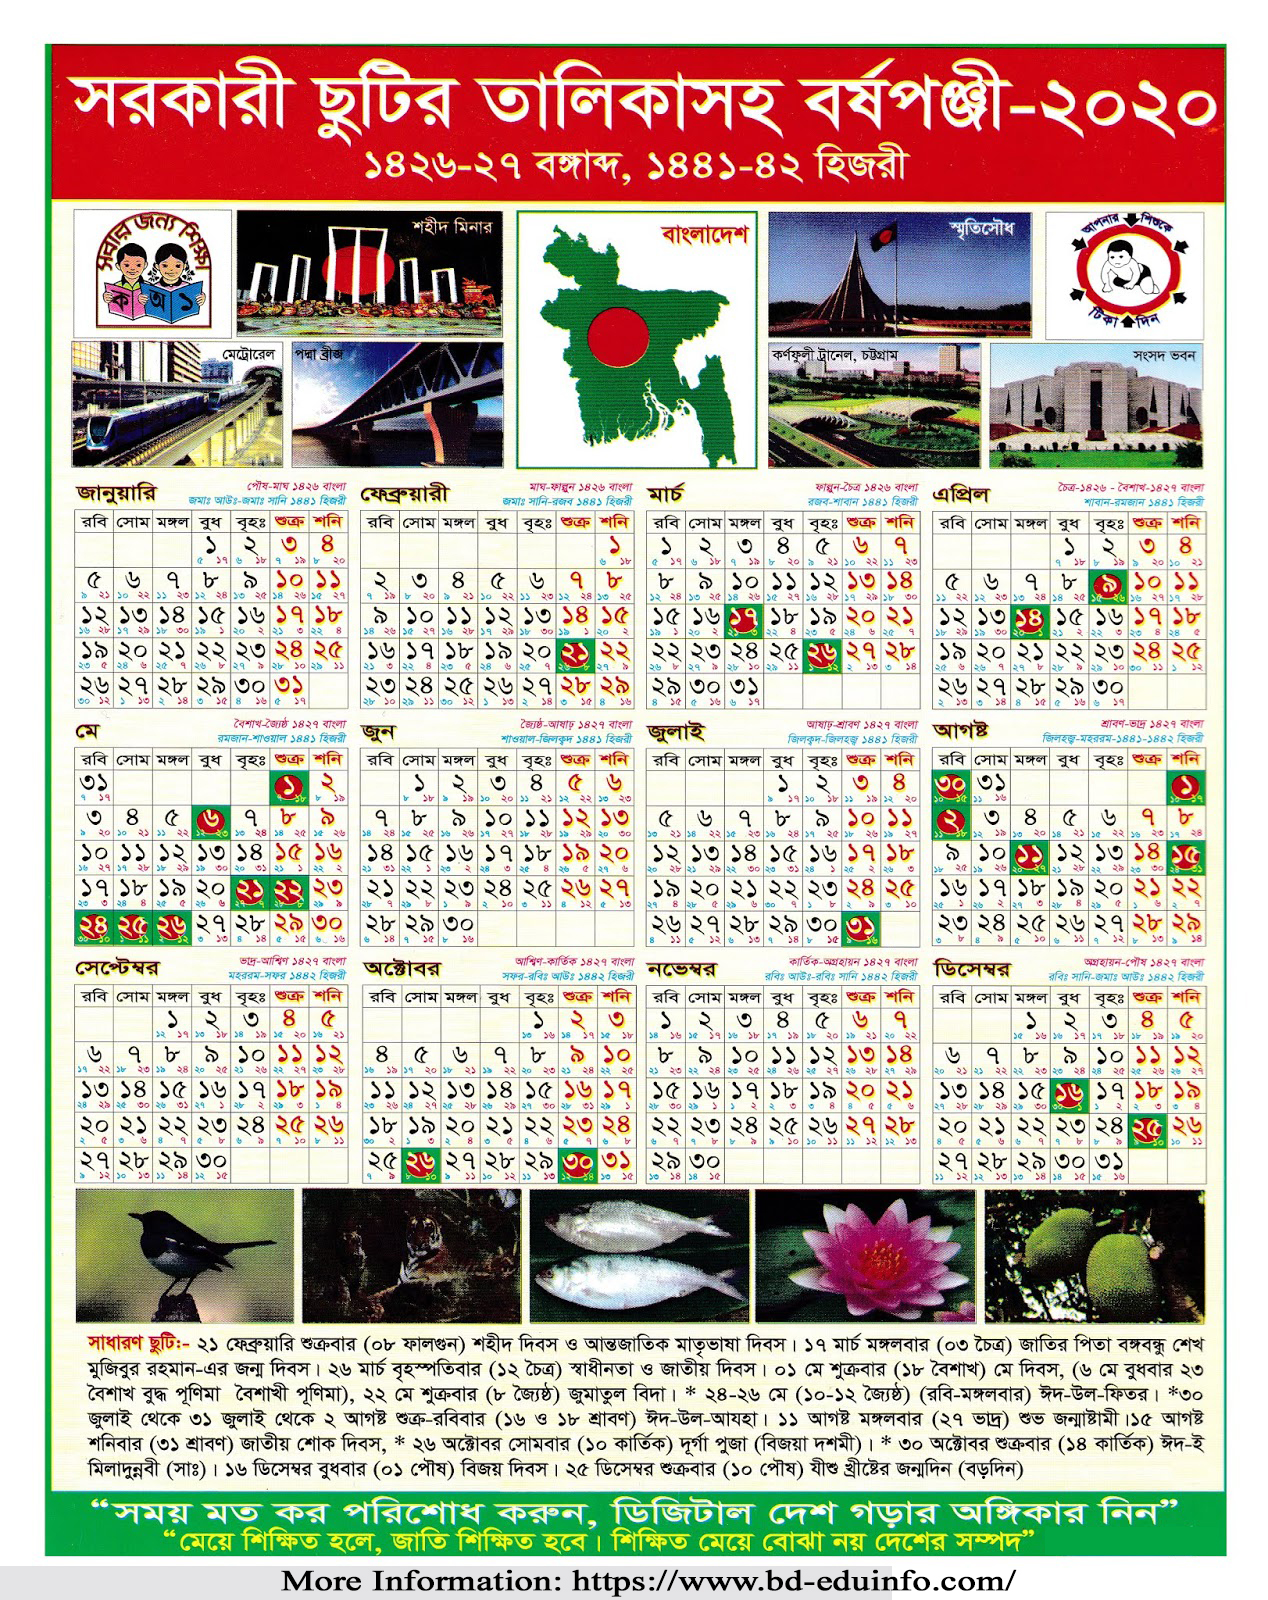 Bangladesh Government Official Calendar 2020